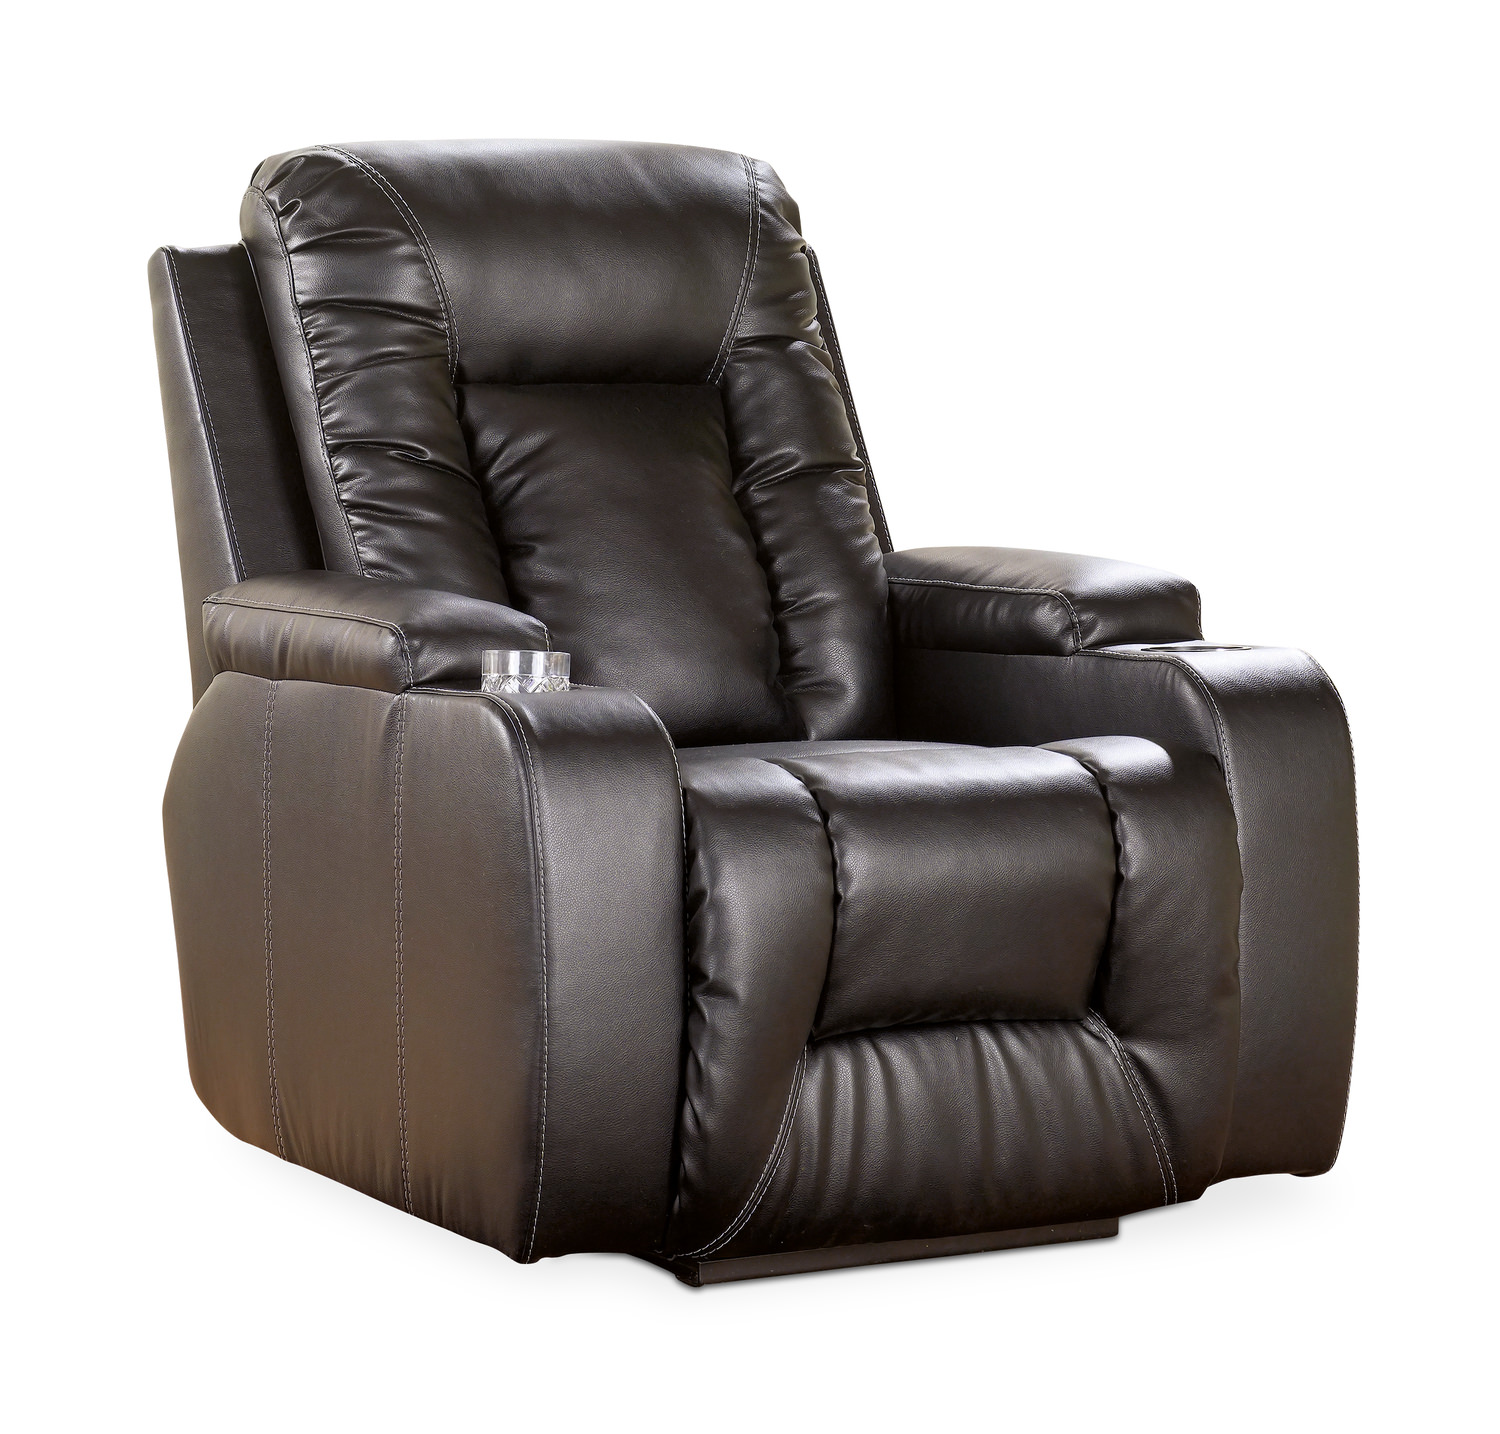 Lodge Style Leather Furniture